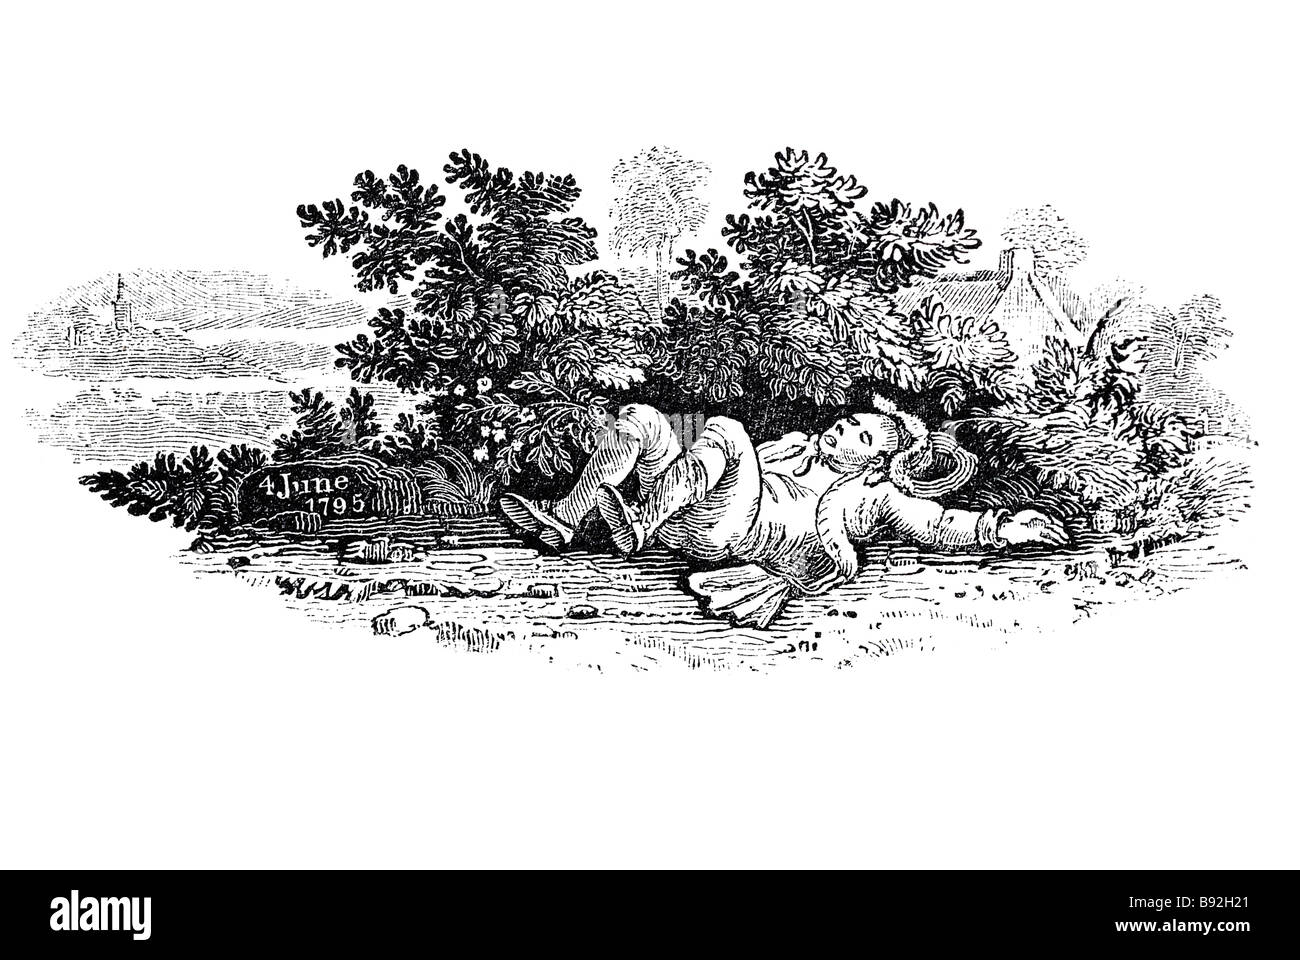 a traveller drinking watering old miller lying asleep bushes behind tipsy drunk date stone drinking king's birthday - Stock Image